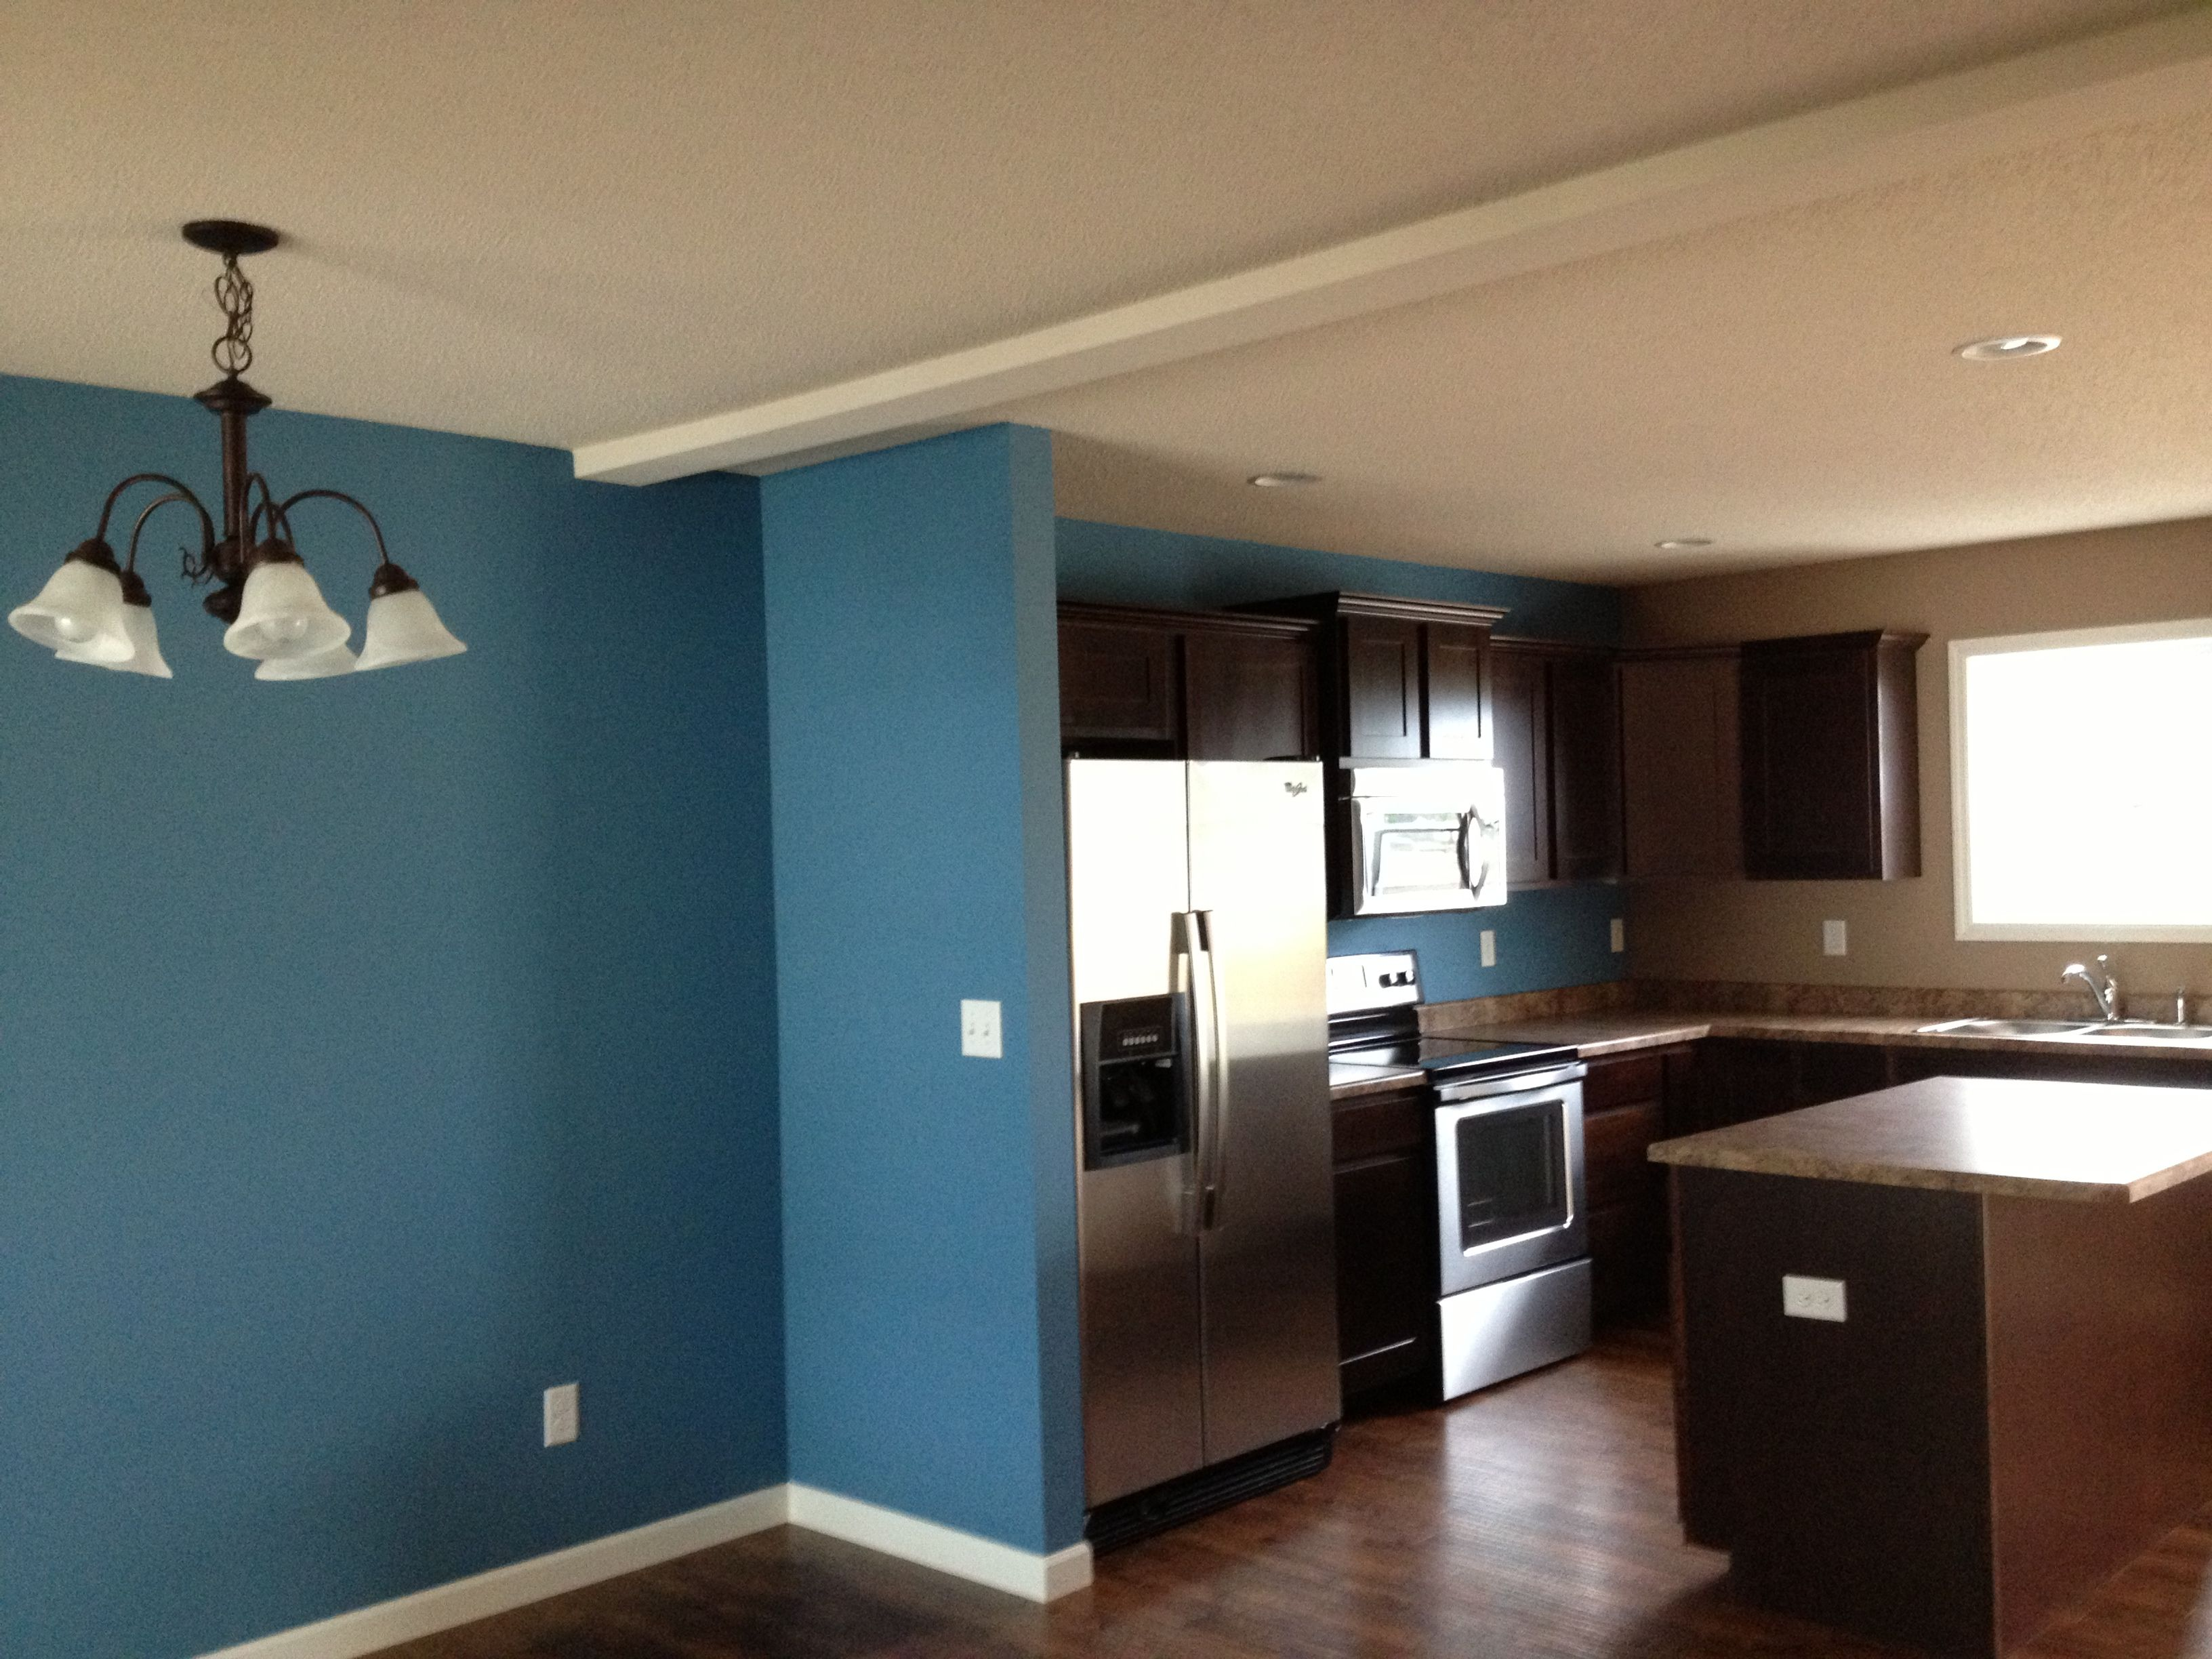 mesmerizing sherwin williams blue living room | Sherwin Williams- Secure Blue | Blue kitchen walls, Blue ...